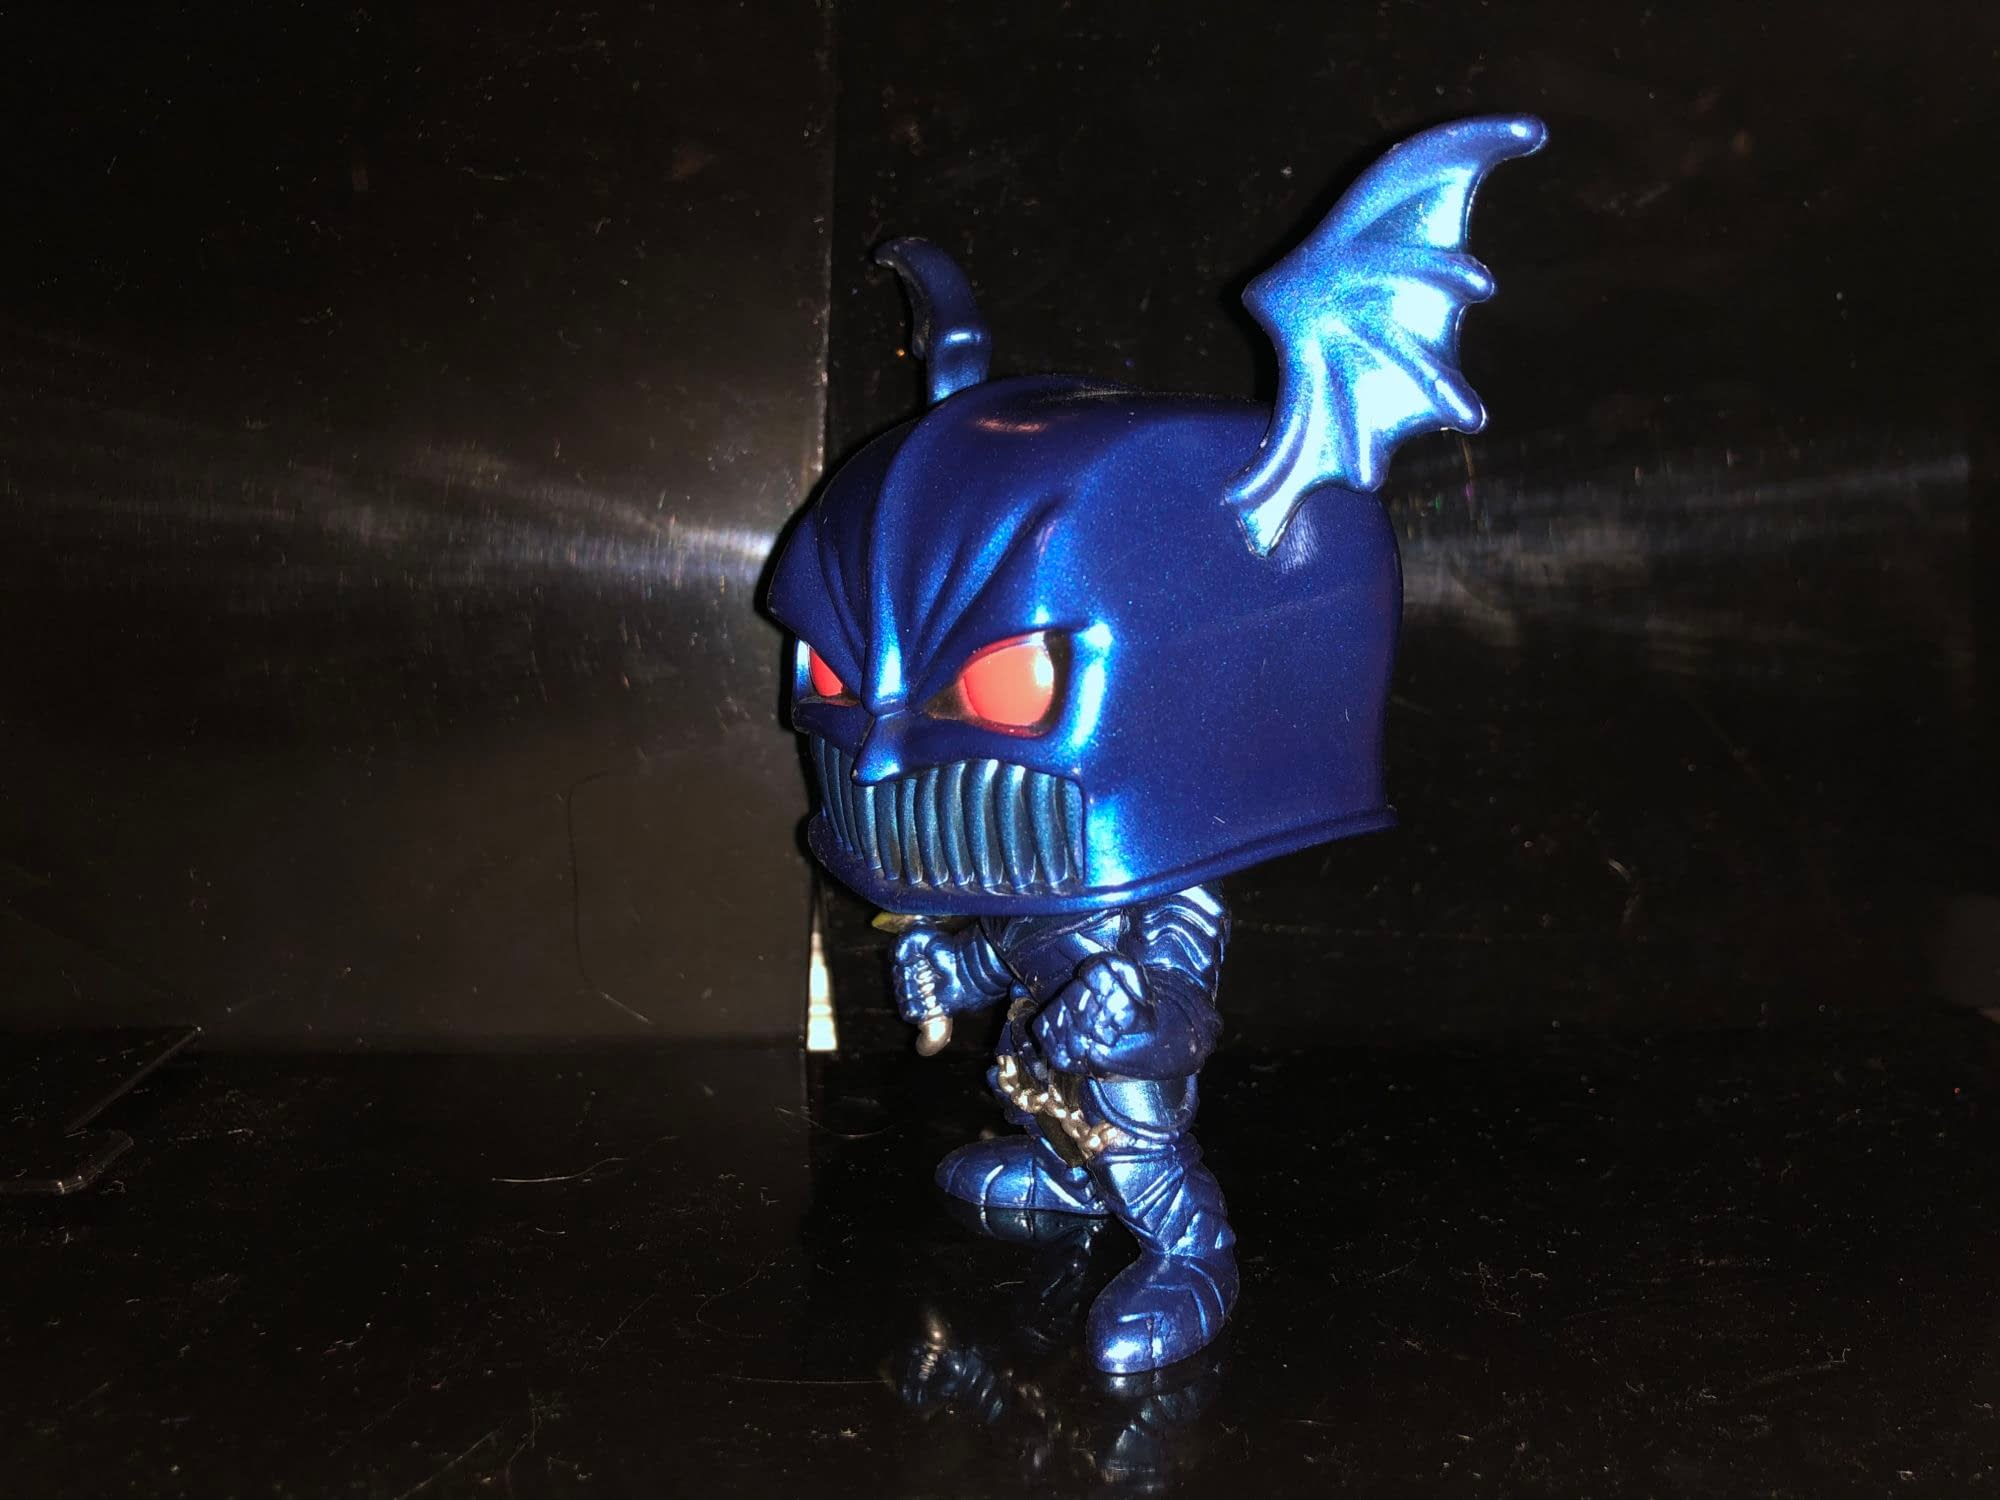 Dark Nights: Metal Gets a New Funko Pop Exclusive Figure